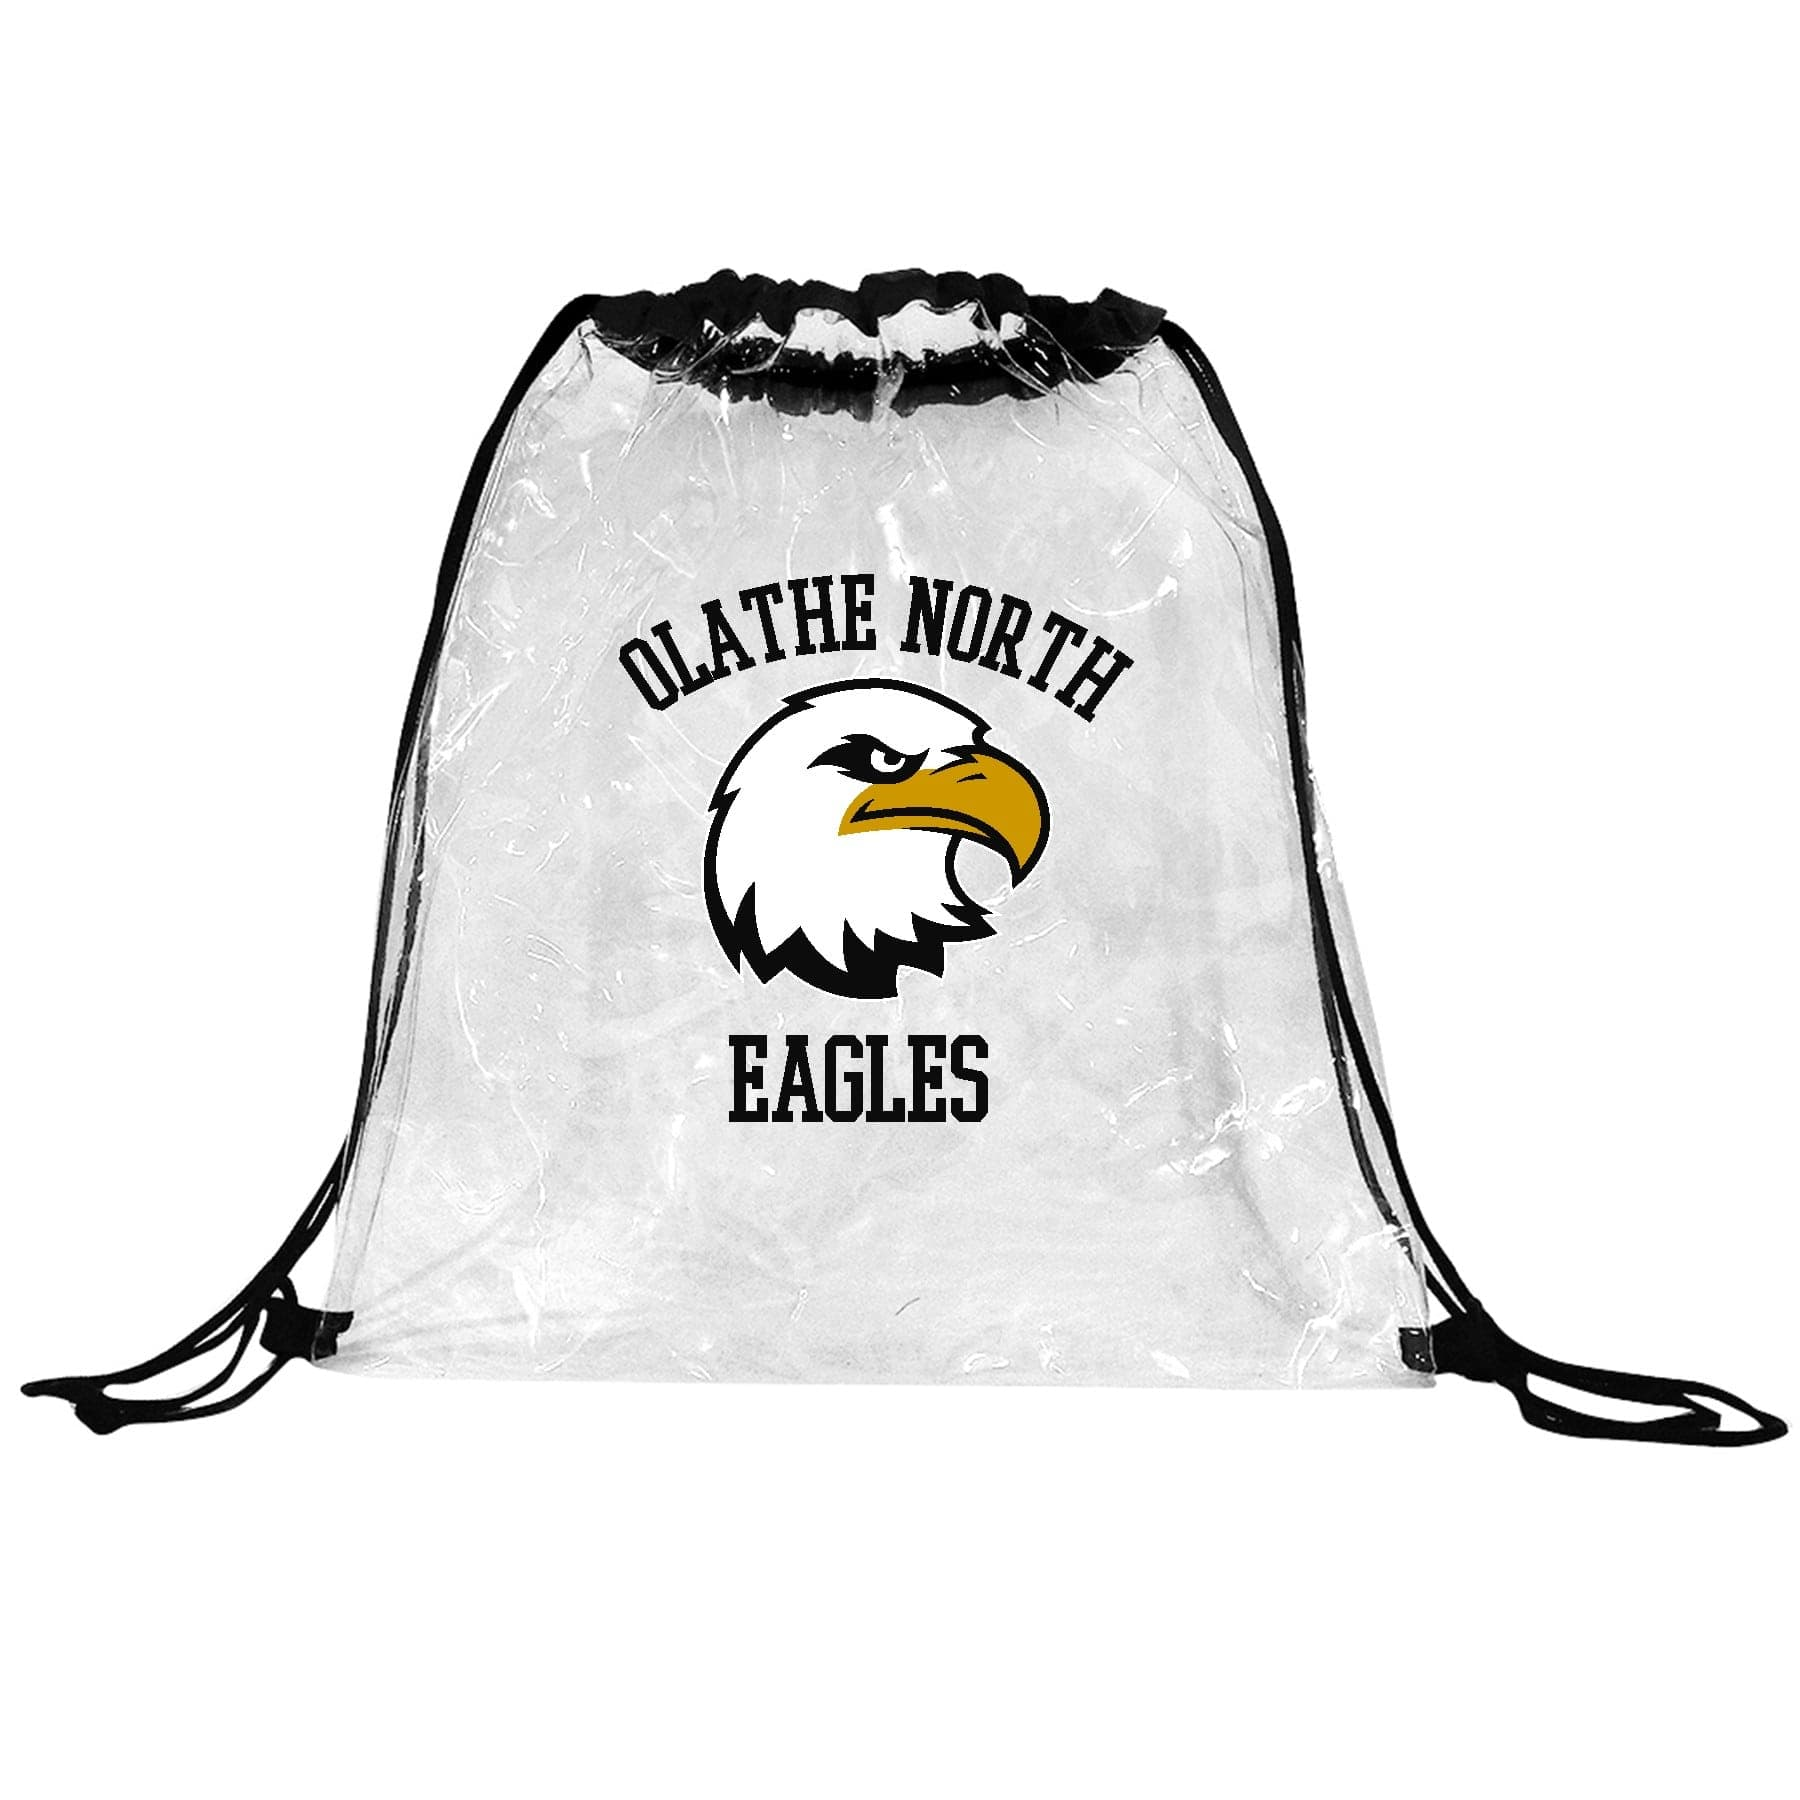 custom printed clear bag with logo stadium requirement